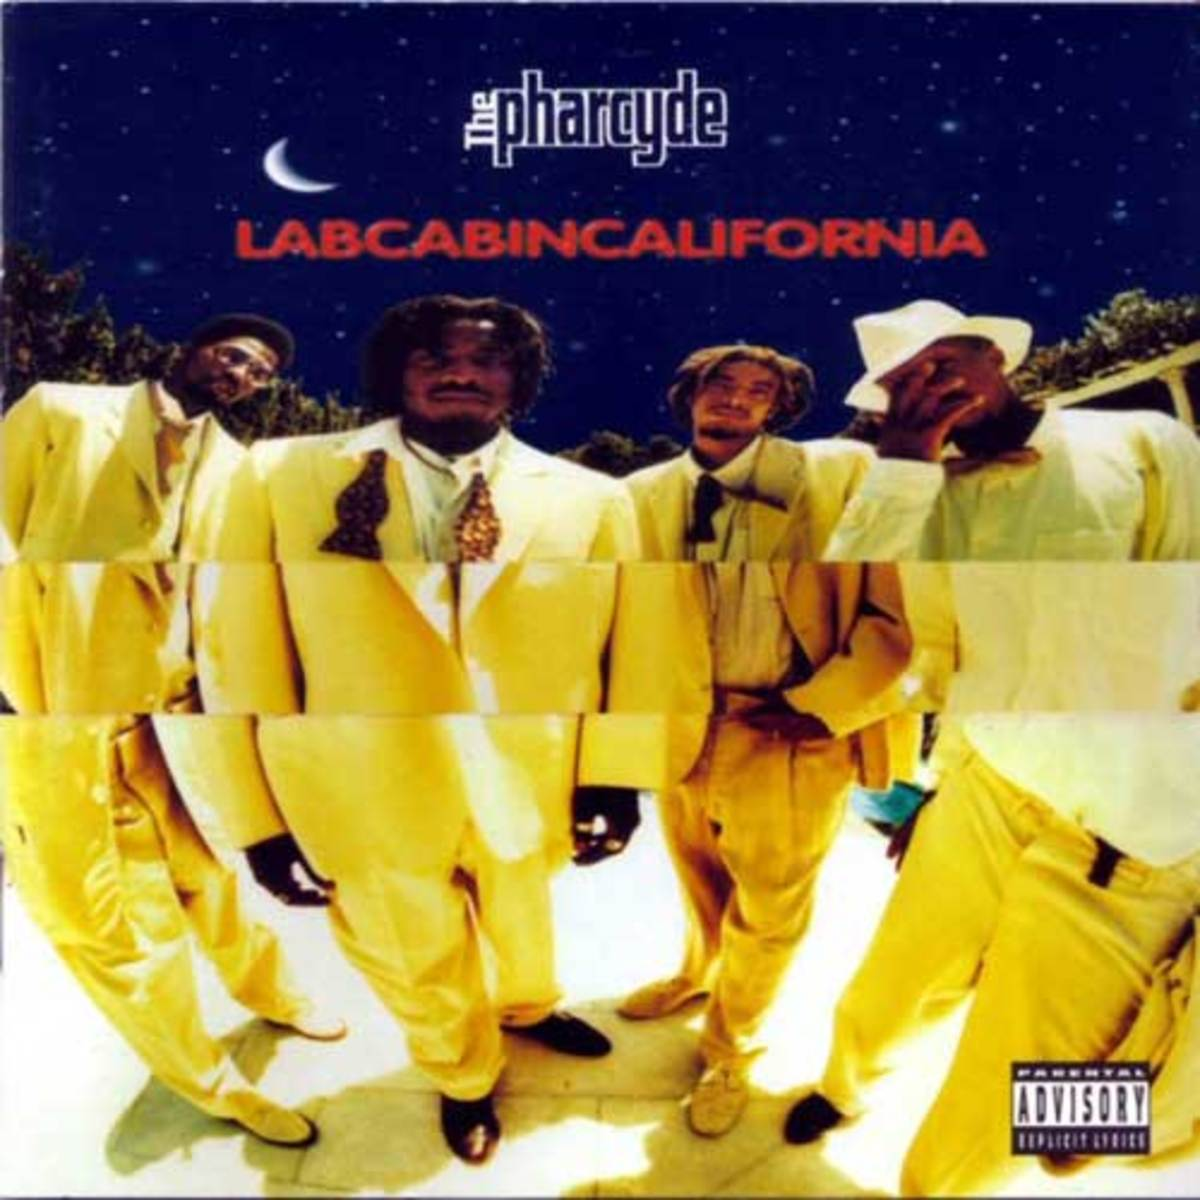 pharcyde-drop.jpg